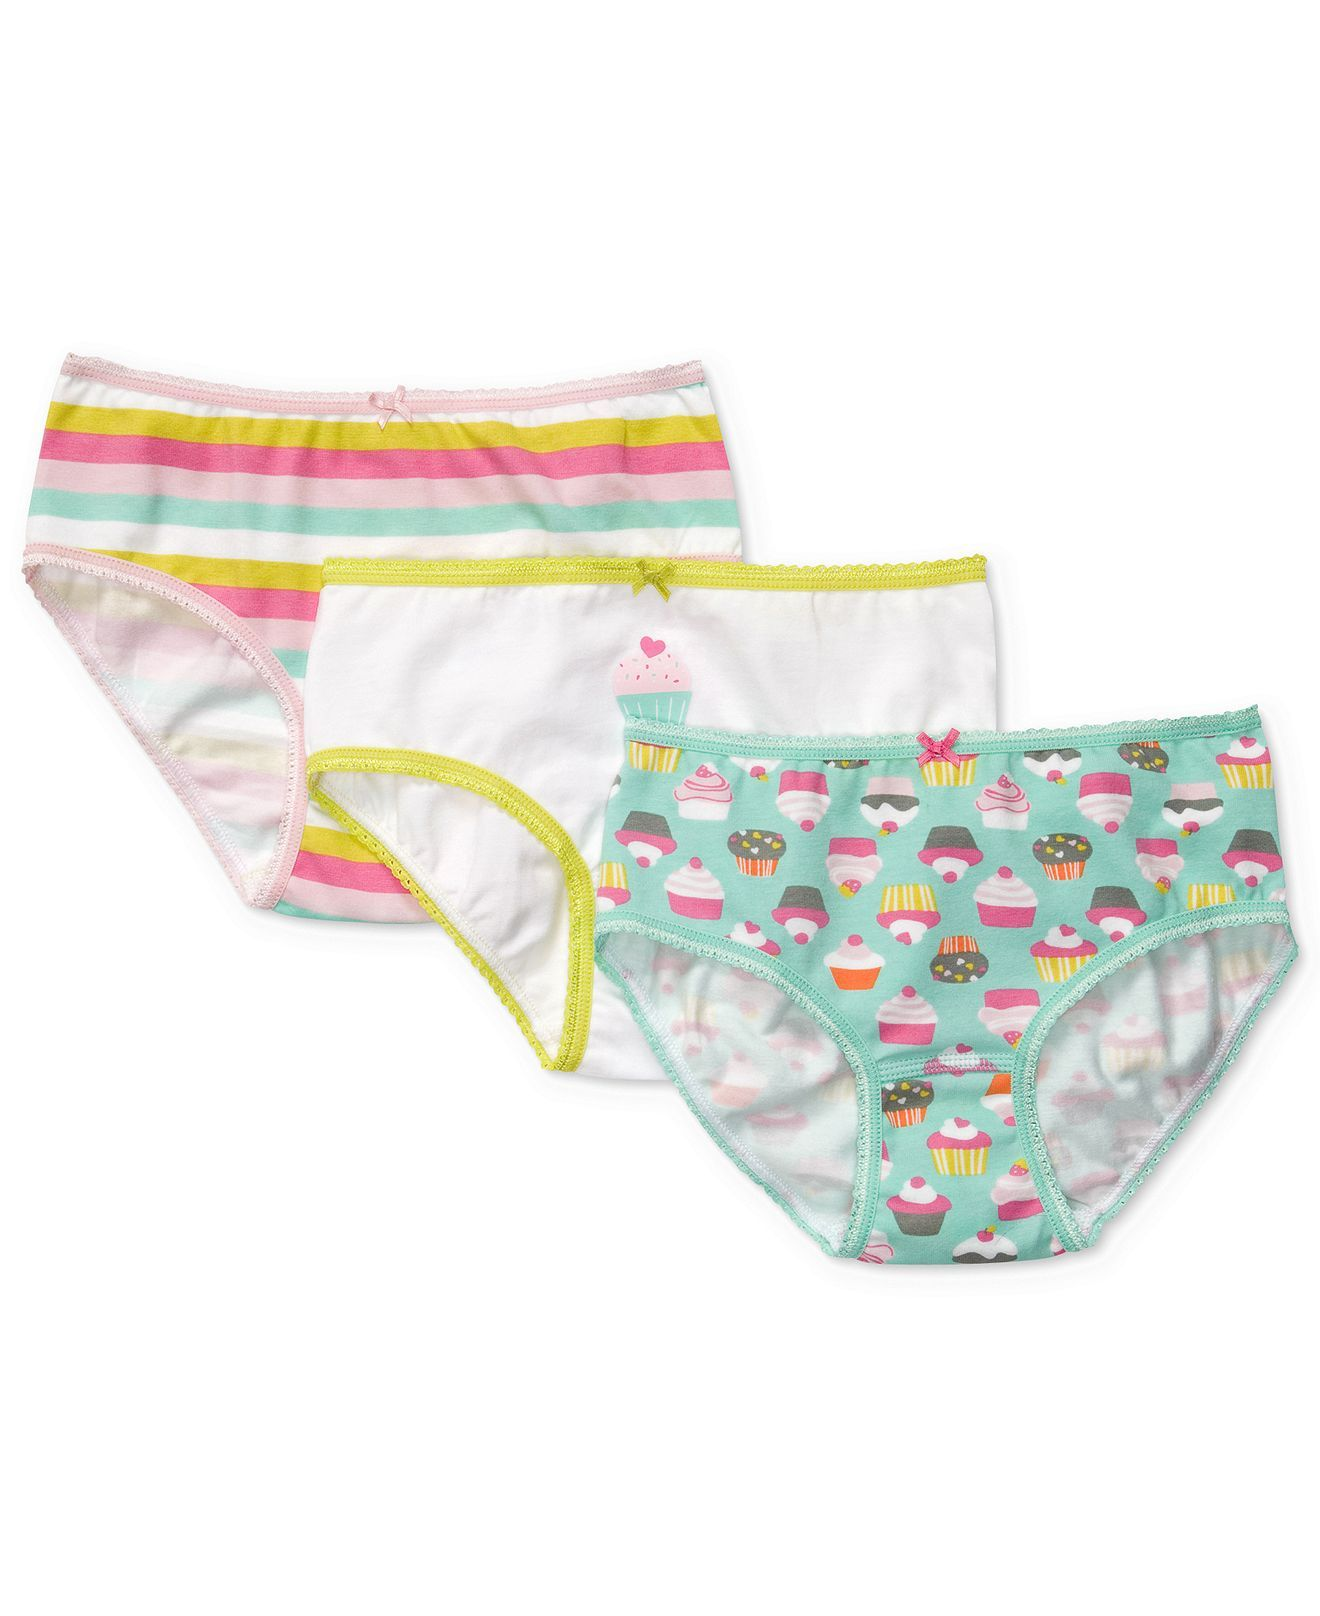 95cce6b97 Carter s Kids Underwear